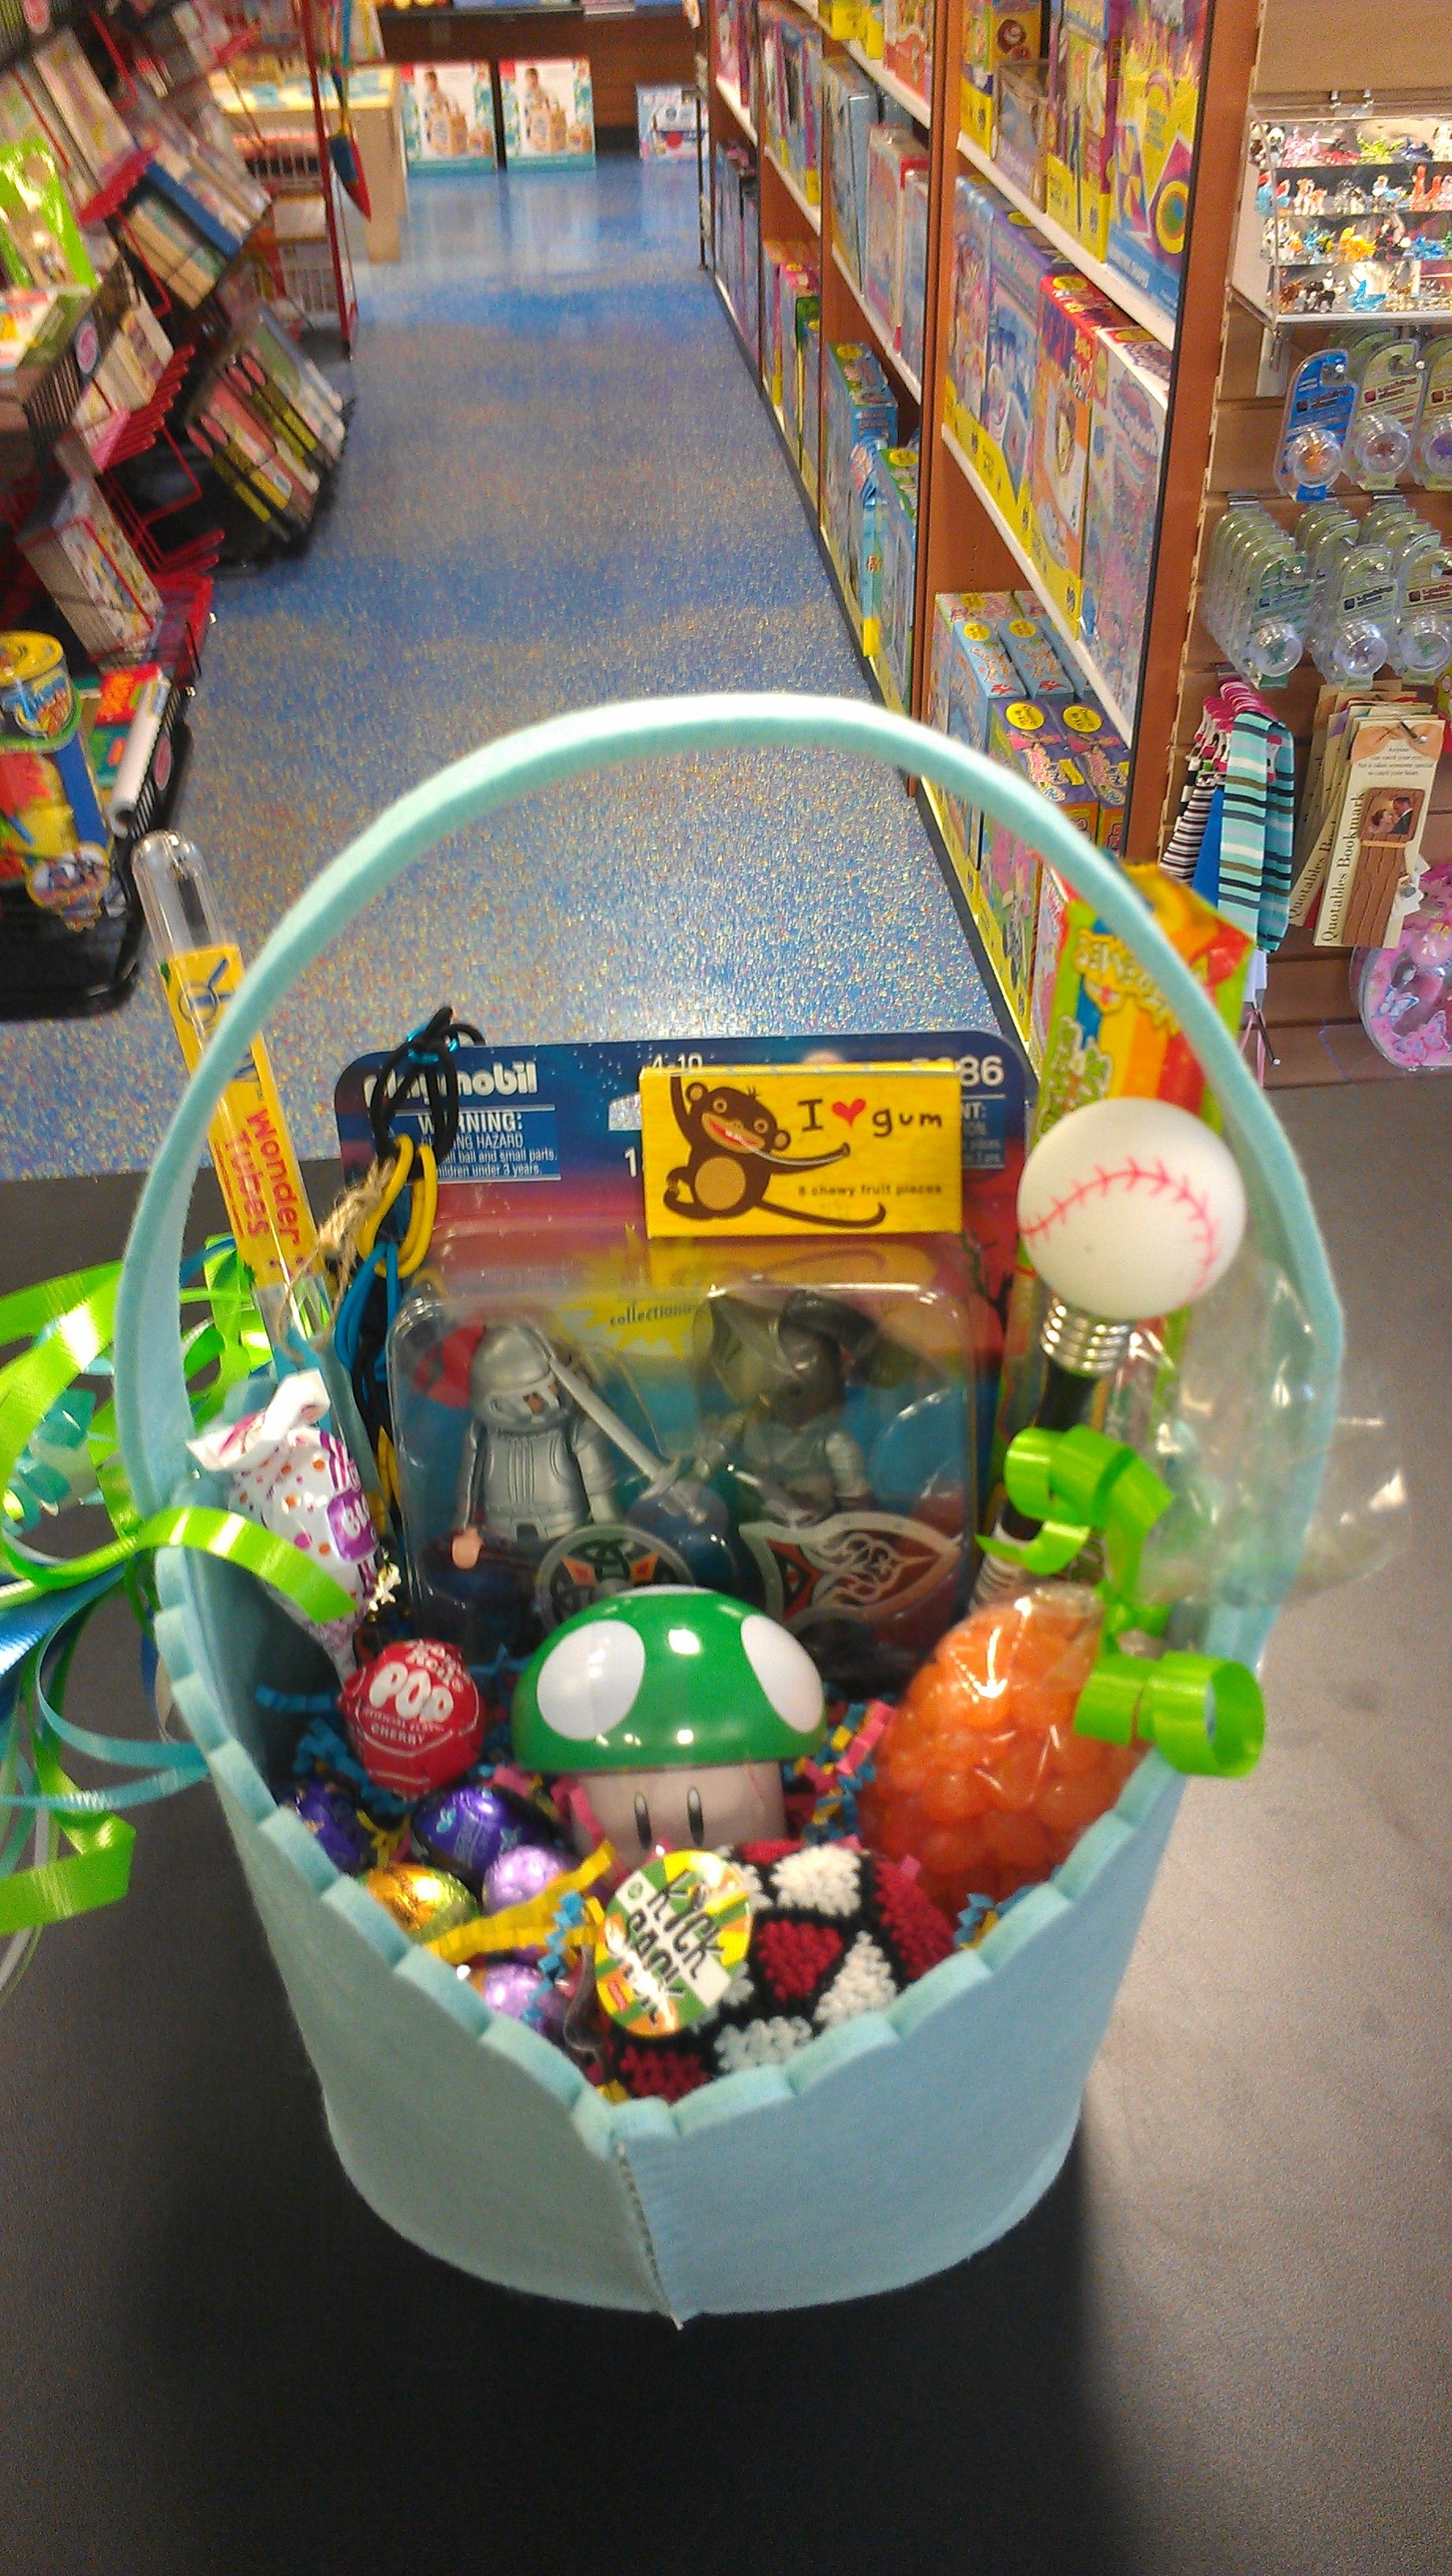 Easter baskets for boys and girls and moms and dads of all ages easter baskets for boys and girls and moms and dads of all ages negle Choice Image